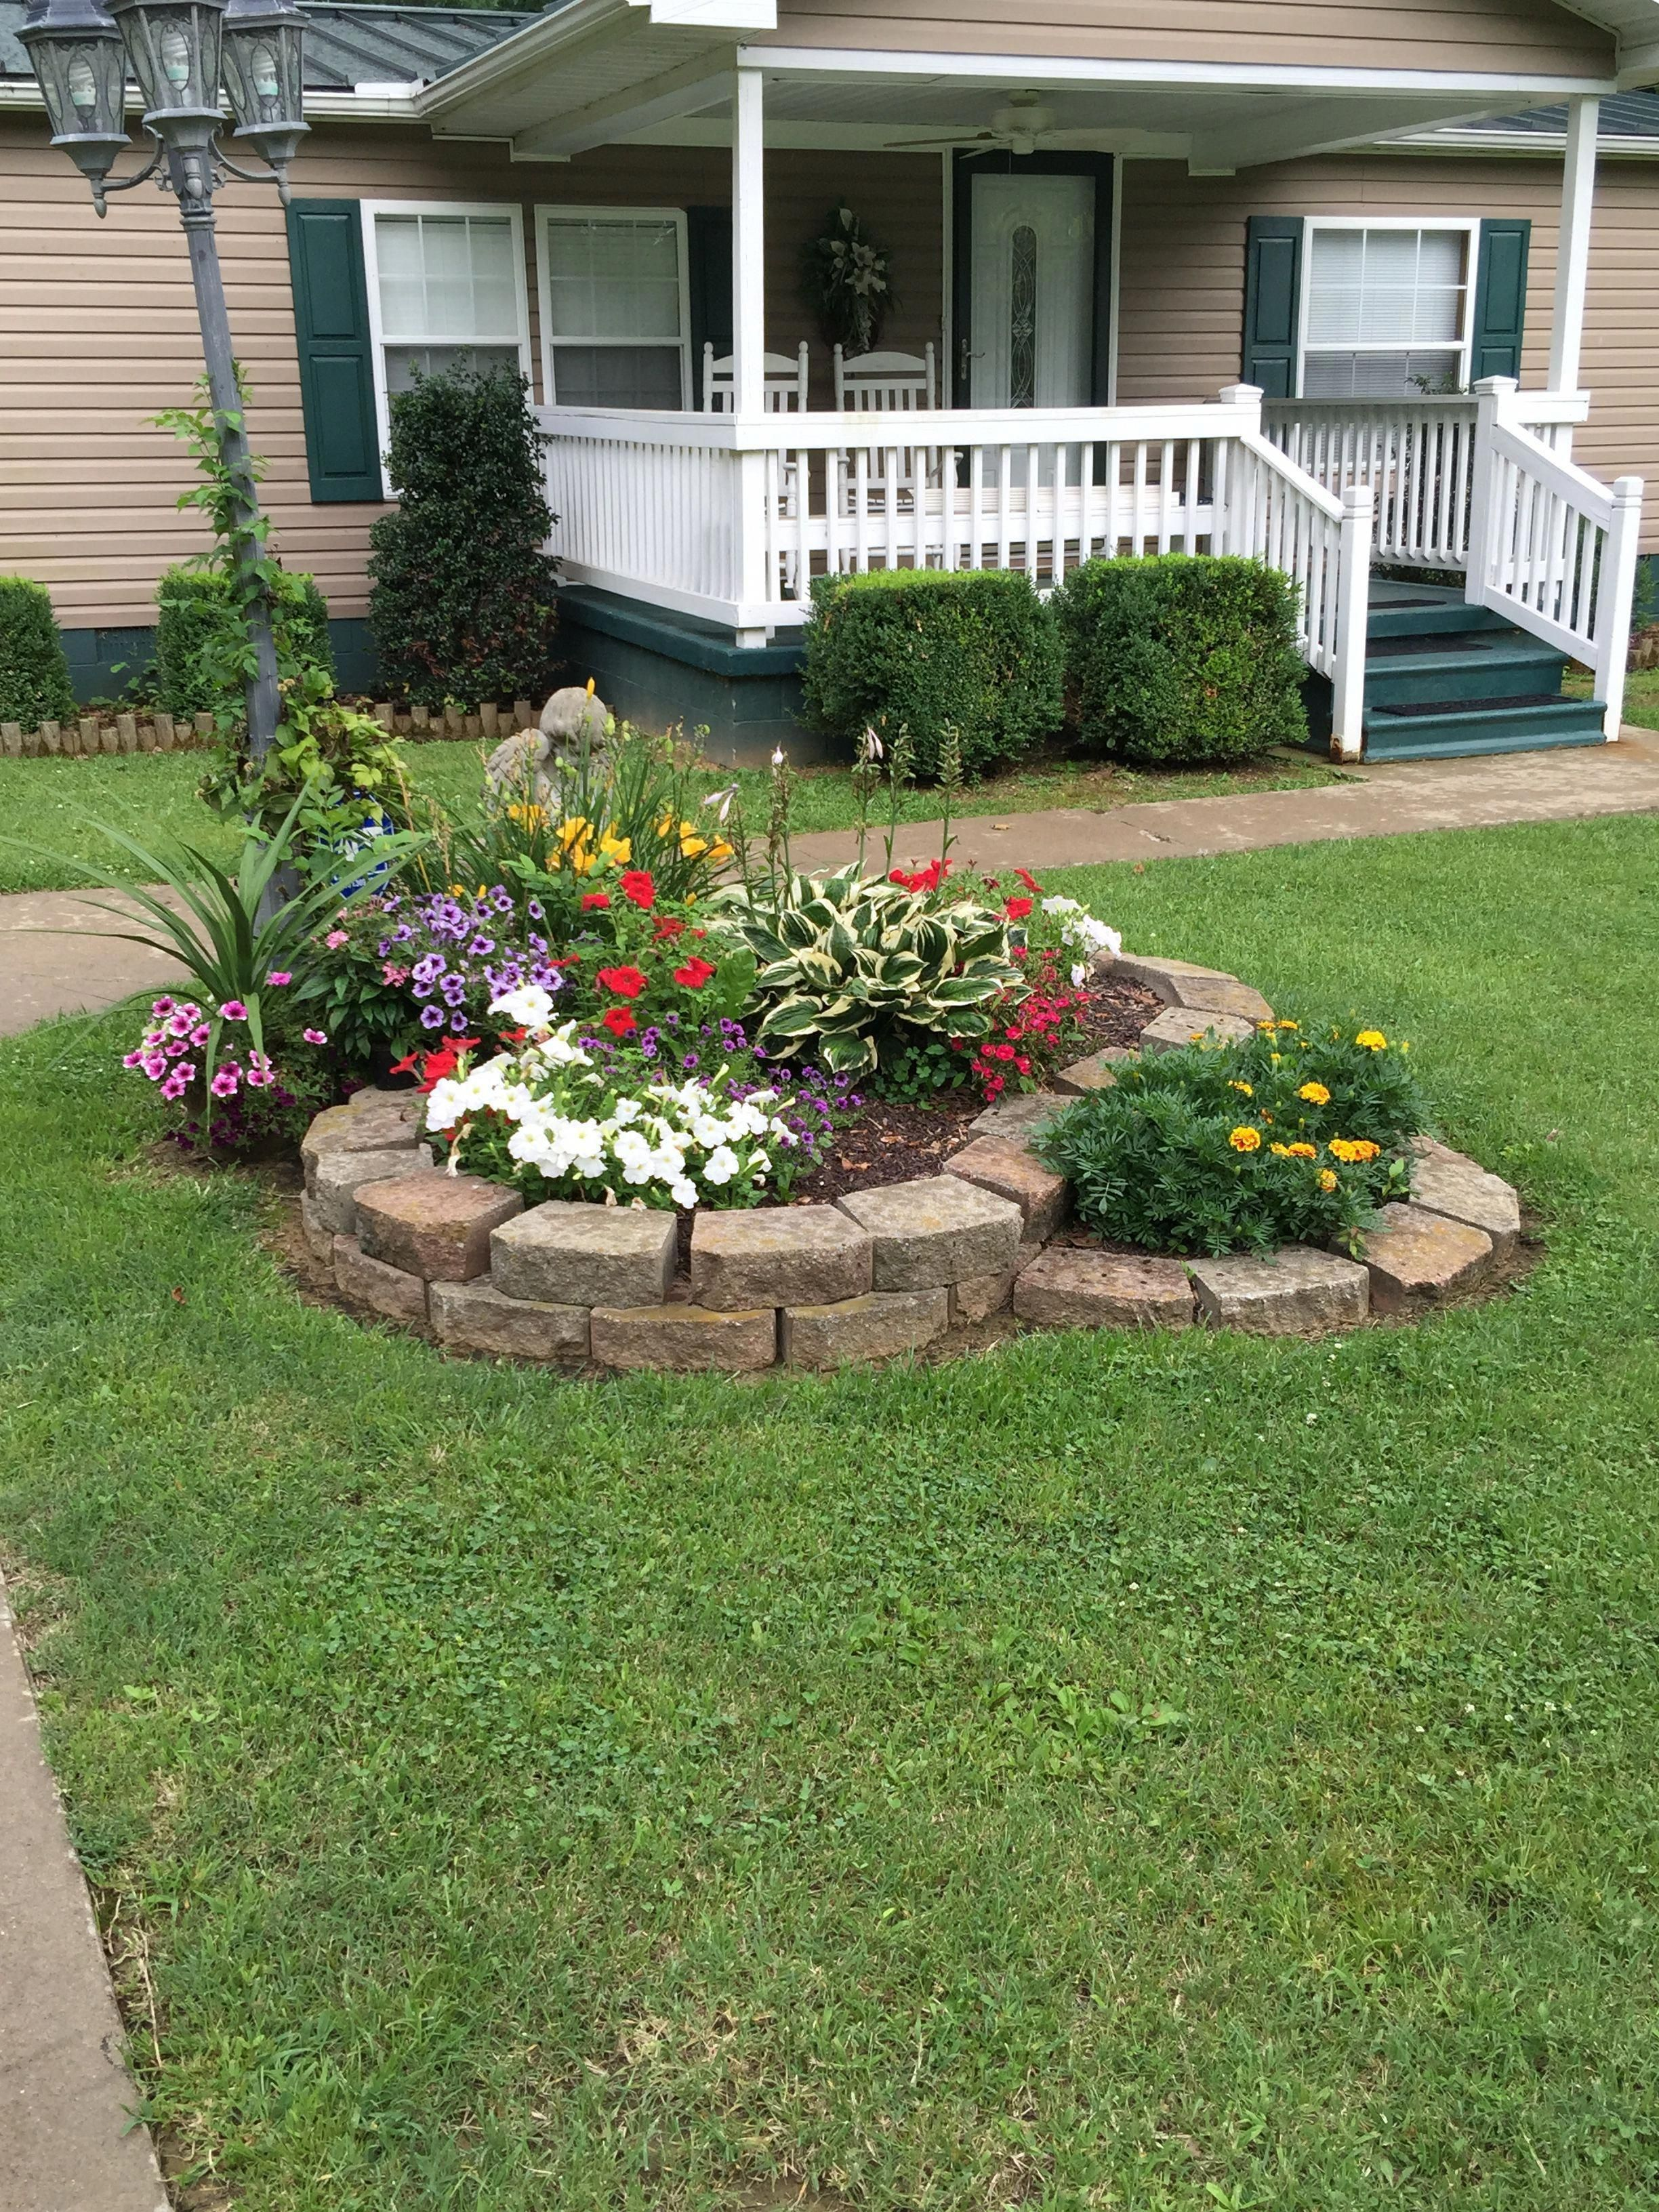 Cheap Landscaping Ideas. Beautiful Home Garden Designs. # ... on Affordable Backyard Landscaping Ideas id=18929